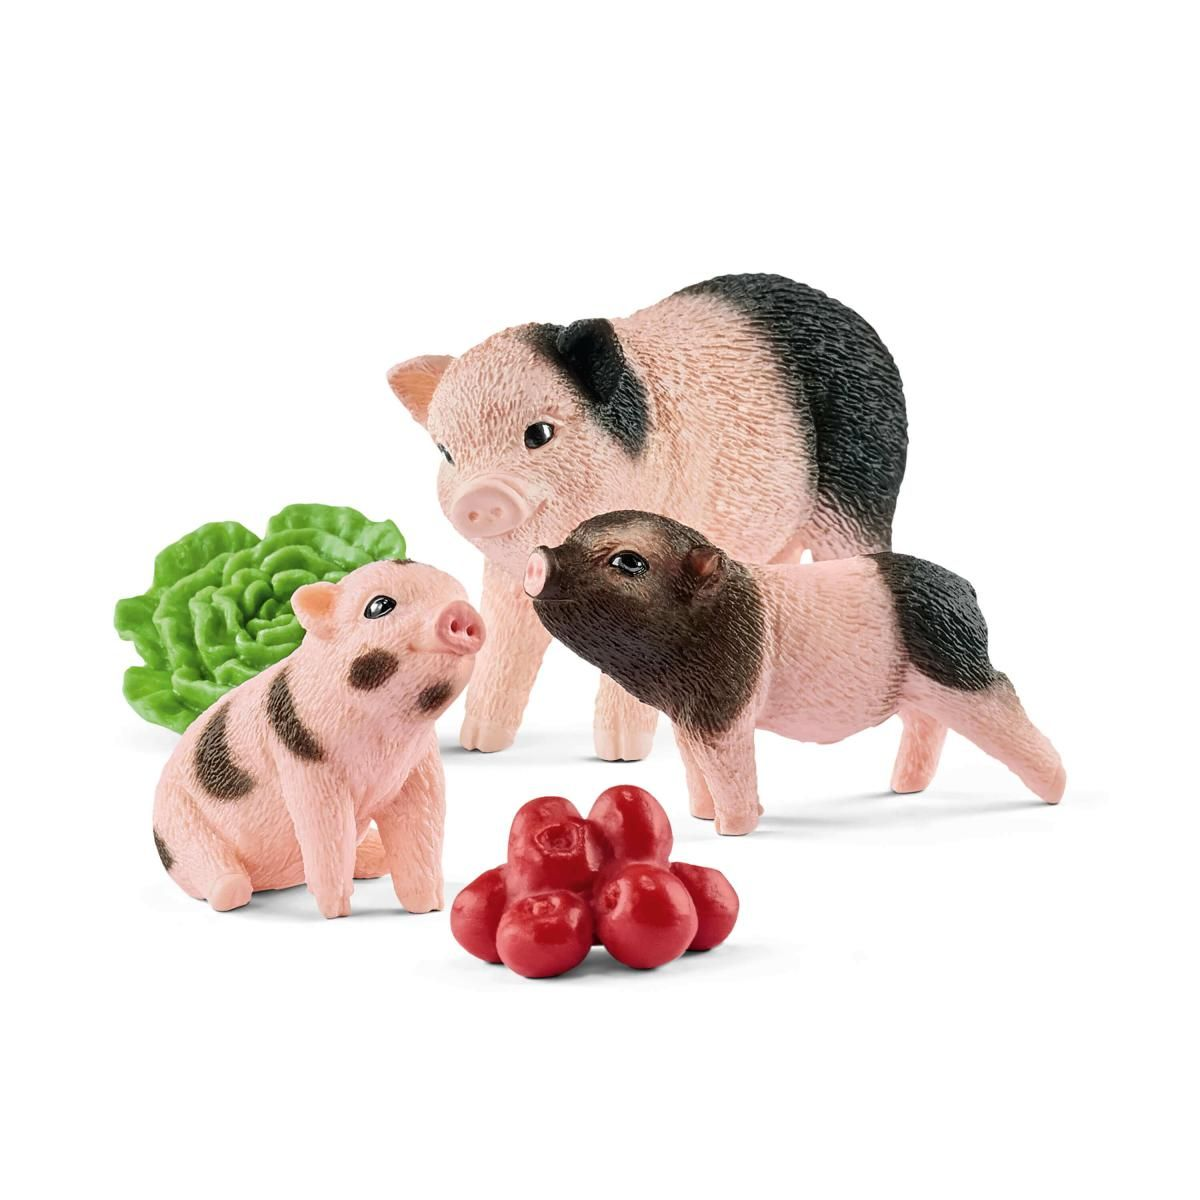 Schleich Miniature Mother Pig With Piglets